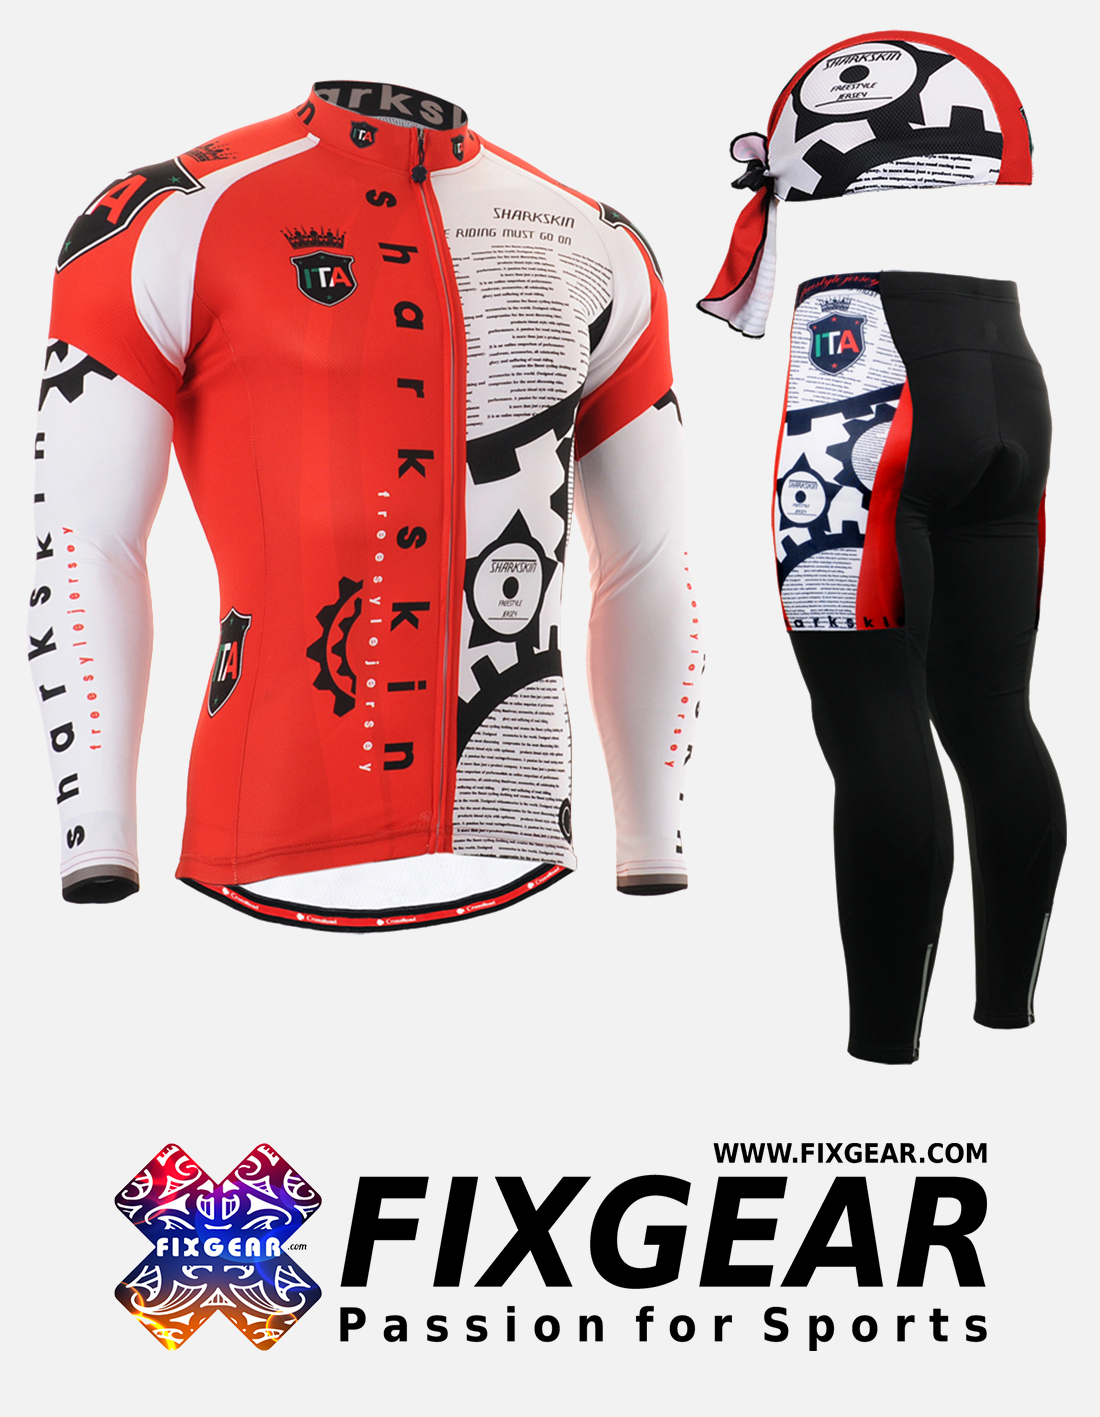 FIXGEAR CS-G401 Set Cycling Jerseys & Padded Pants